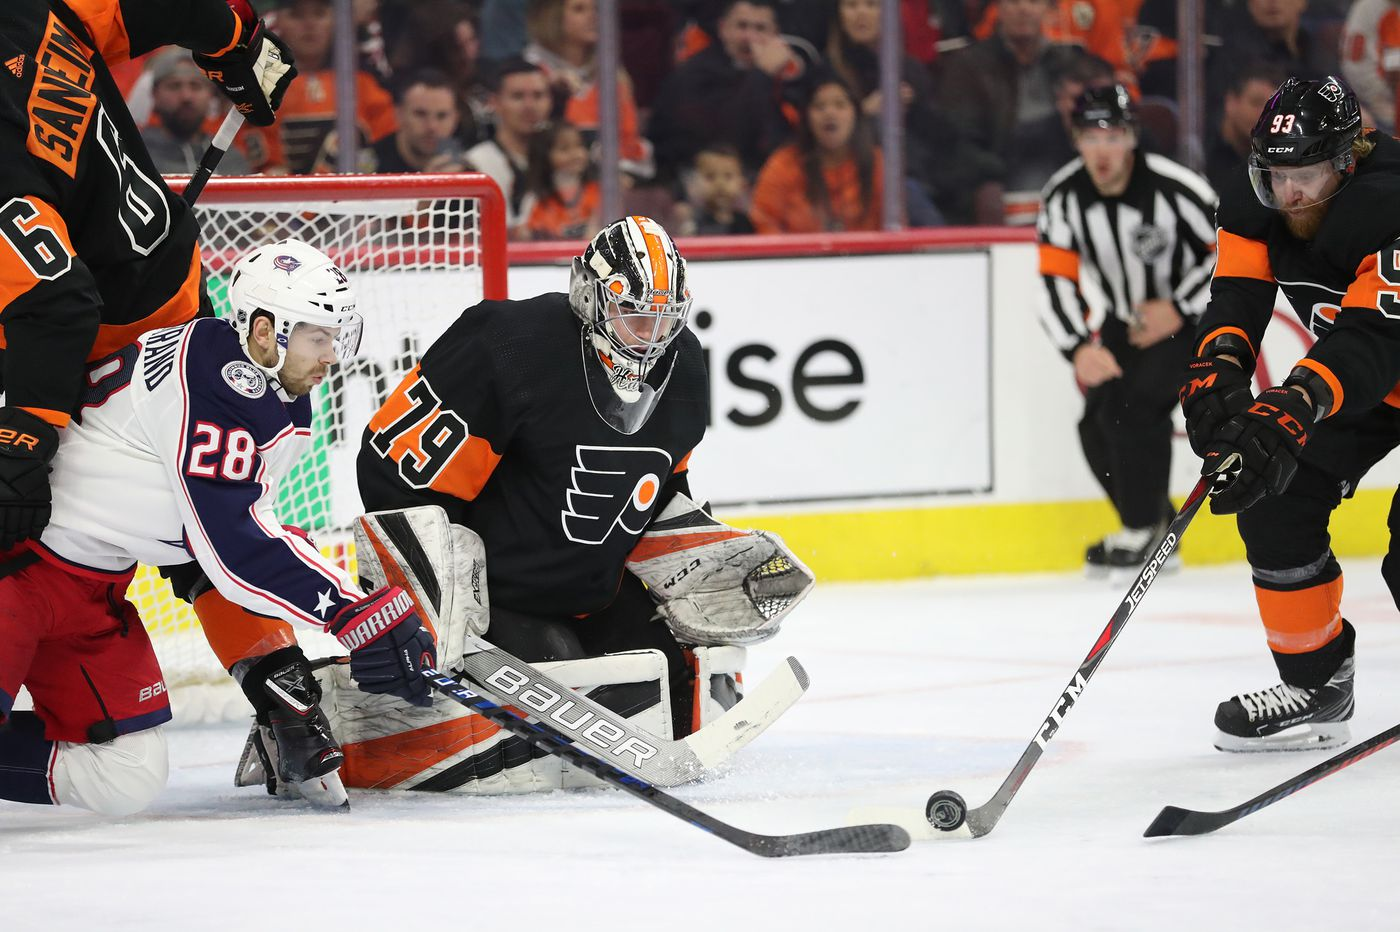 Carter Hart to start for Flyers, who must prove they're playoff contenders by taking care of Hurricanes